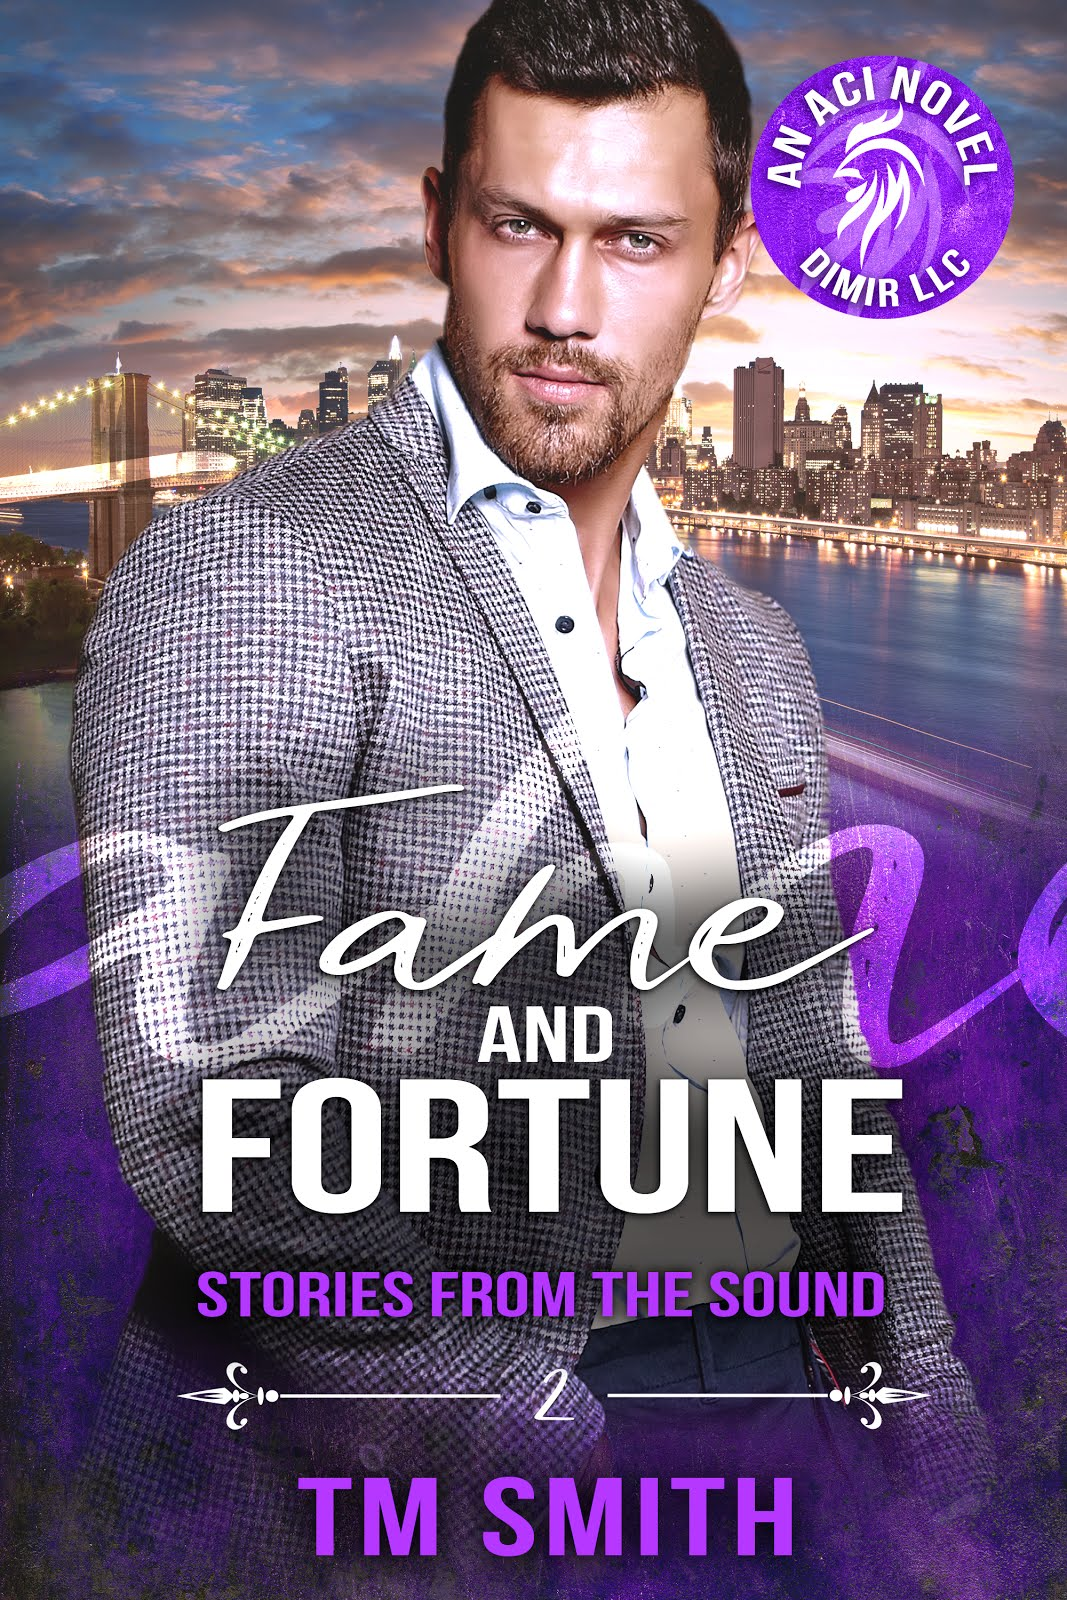 Fame and Fortune (Stories from the Sound book 2) Pre-order your copy | Available May 16th